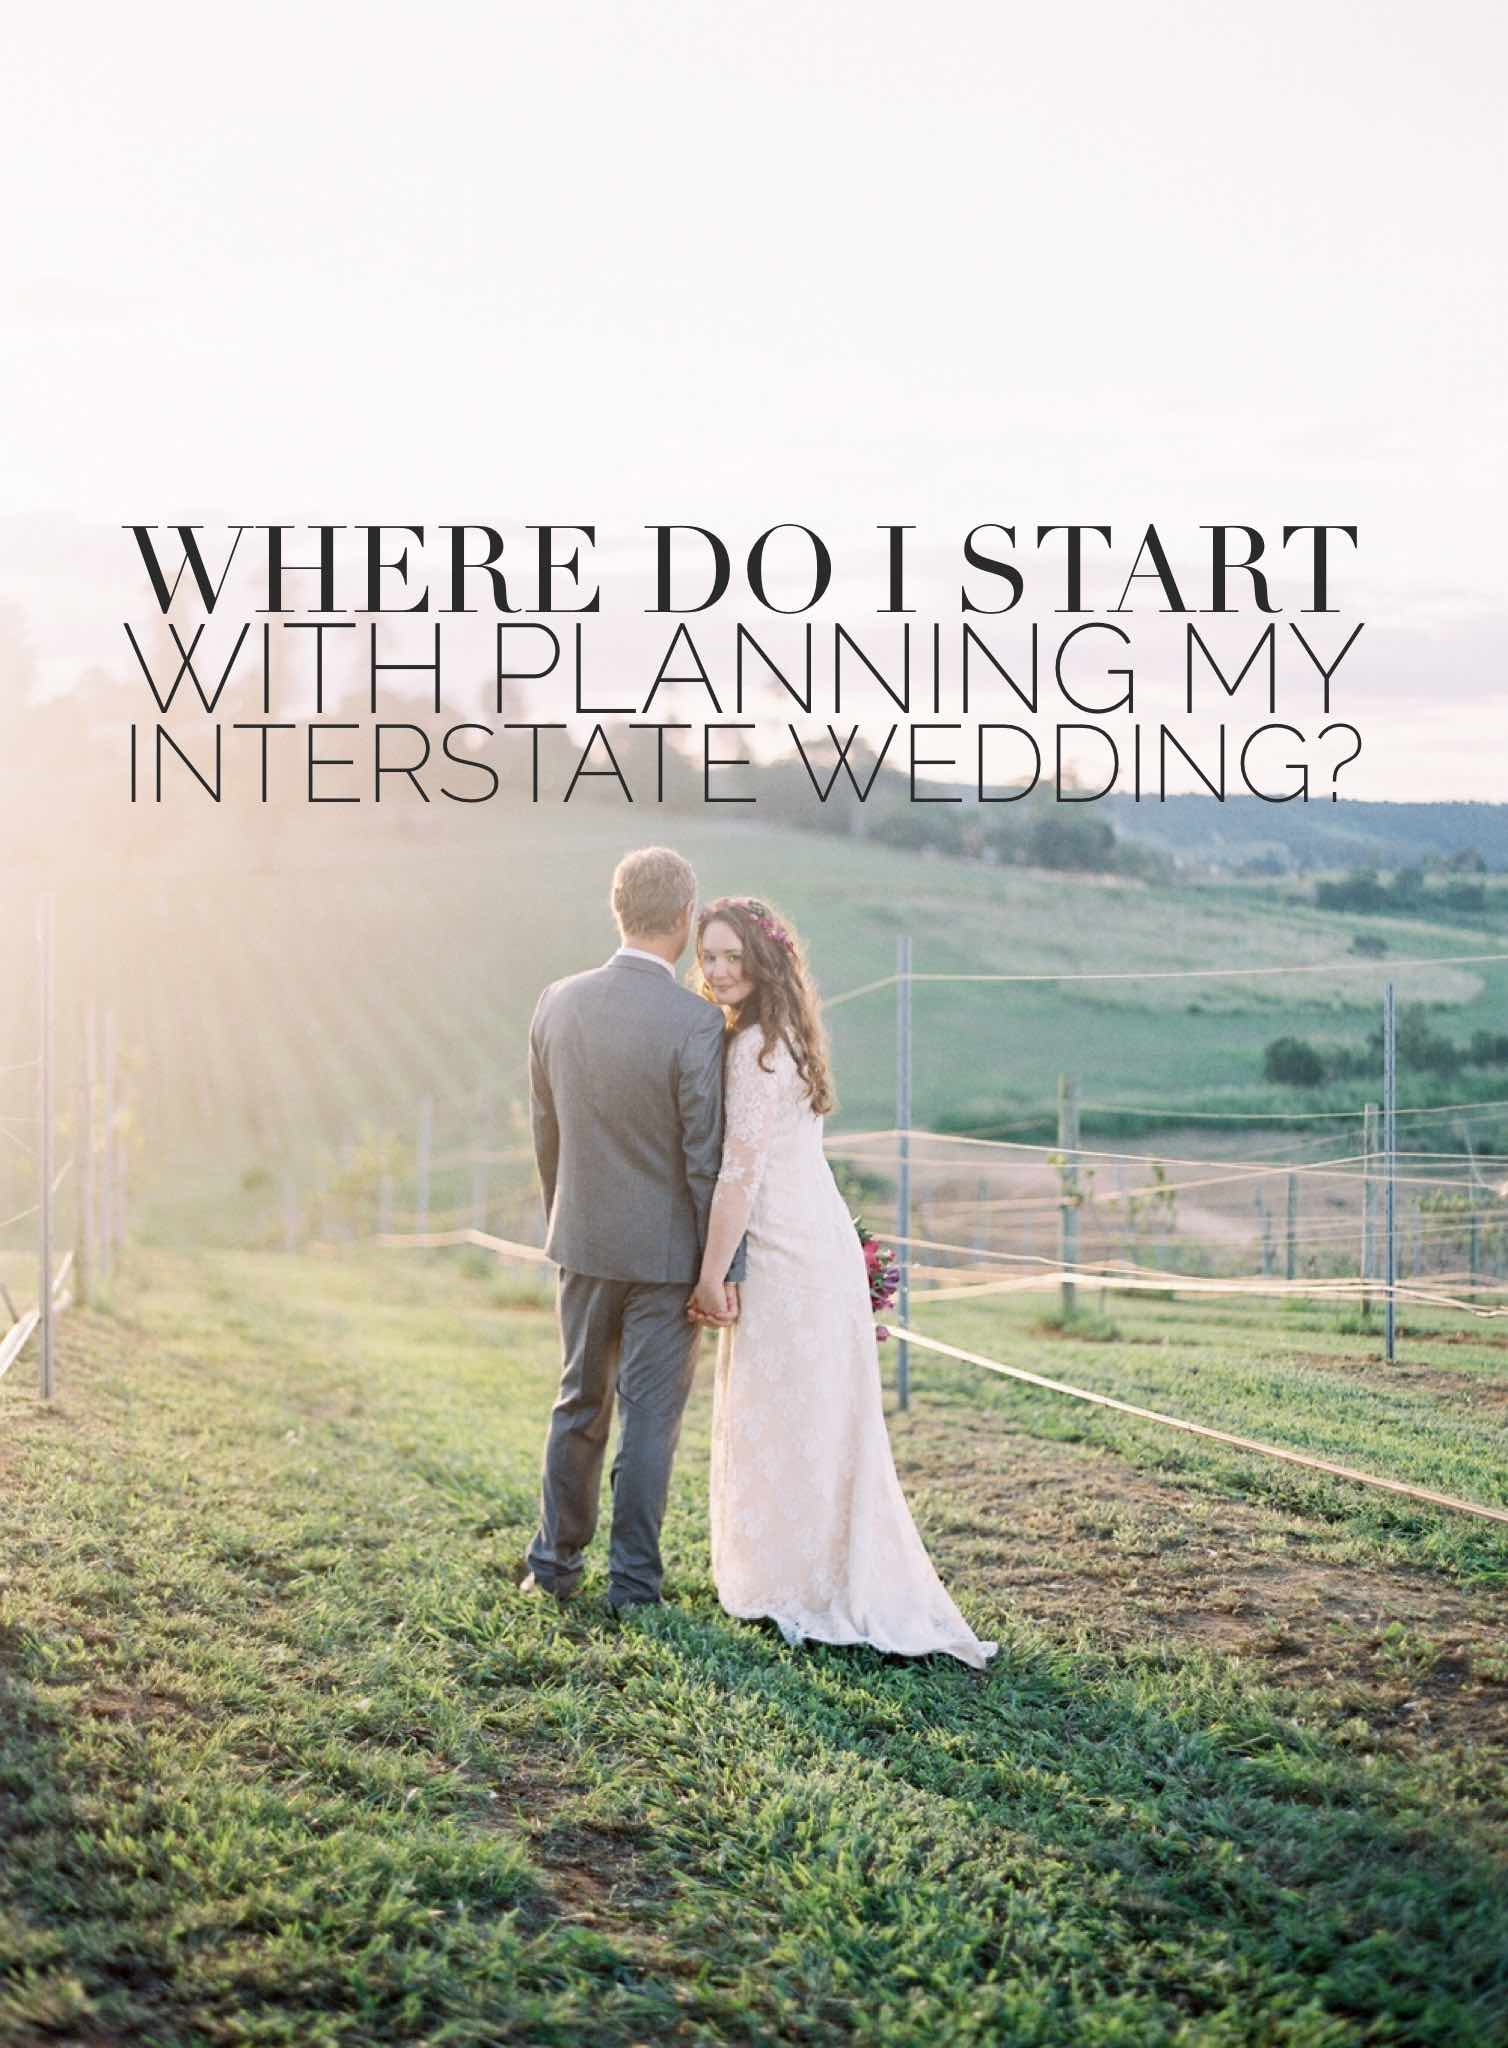 how-to-plan-an-interstate-wedding.jpg